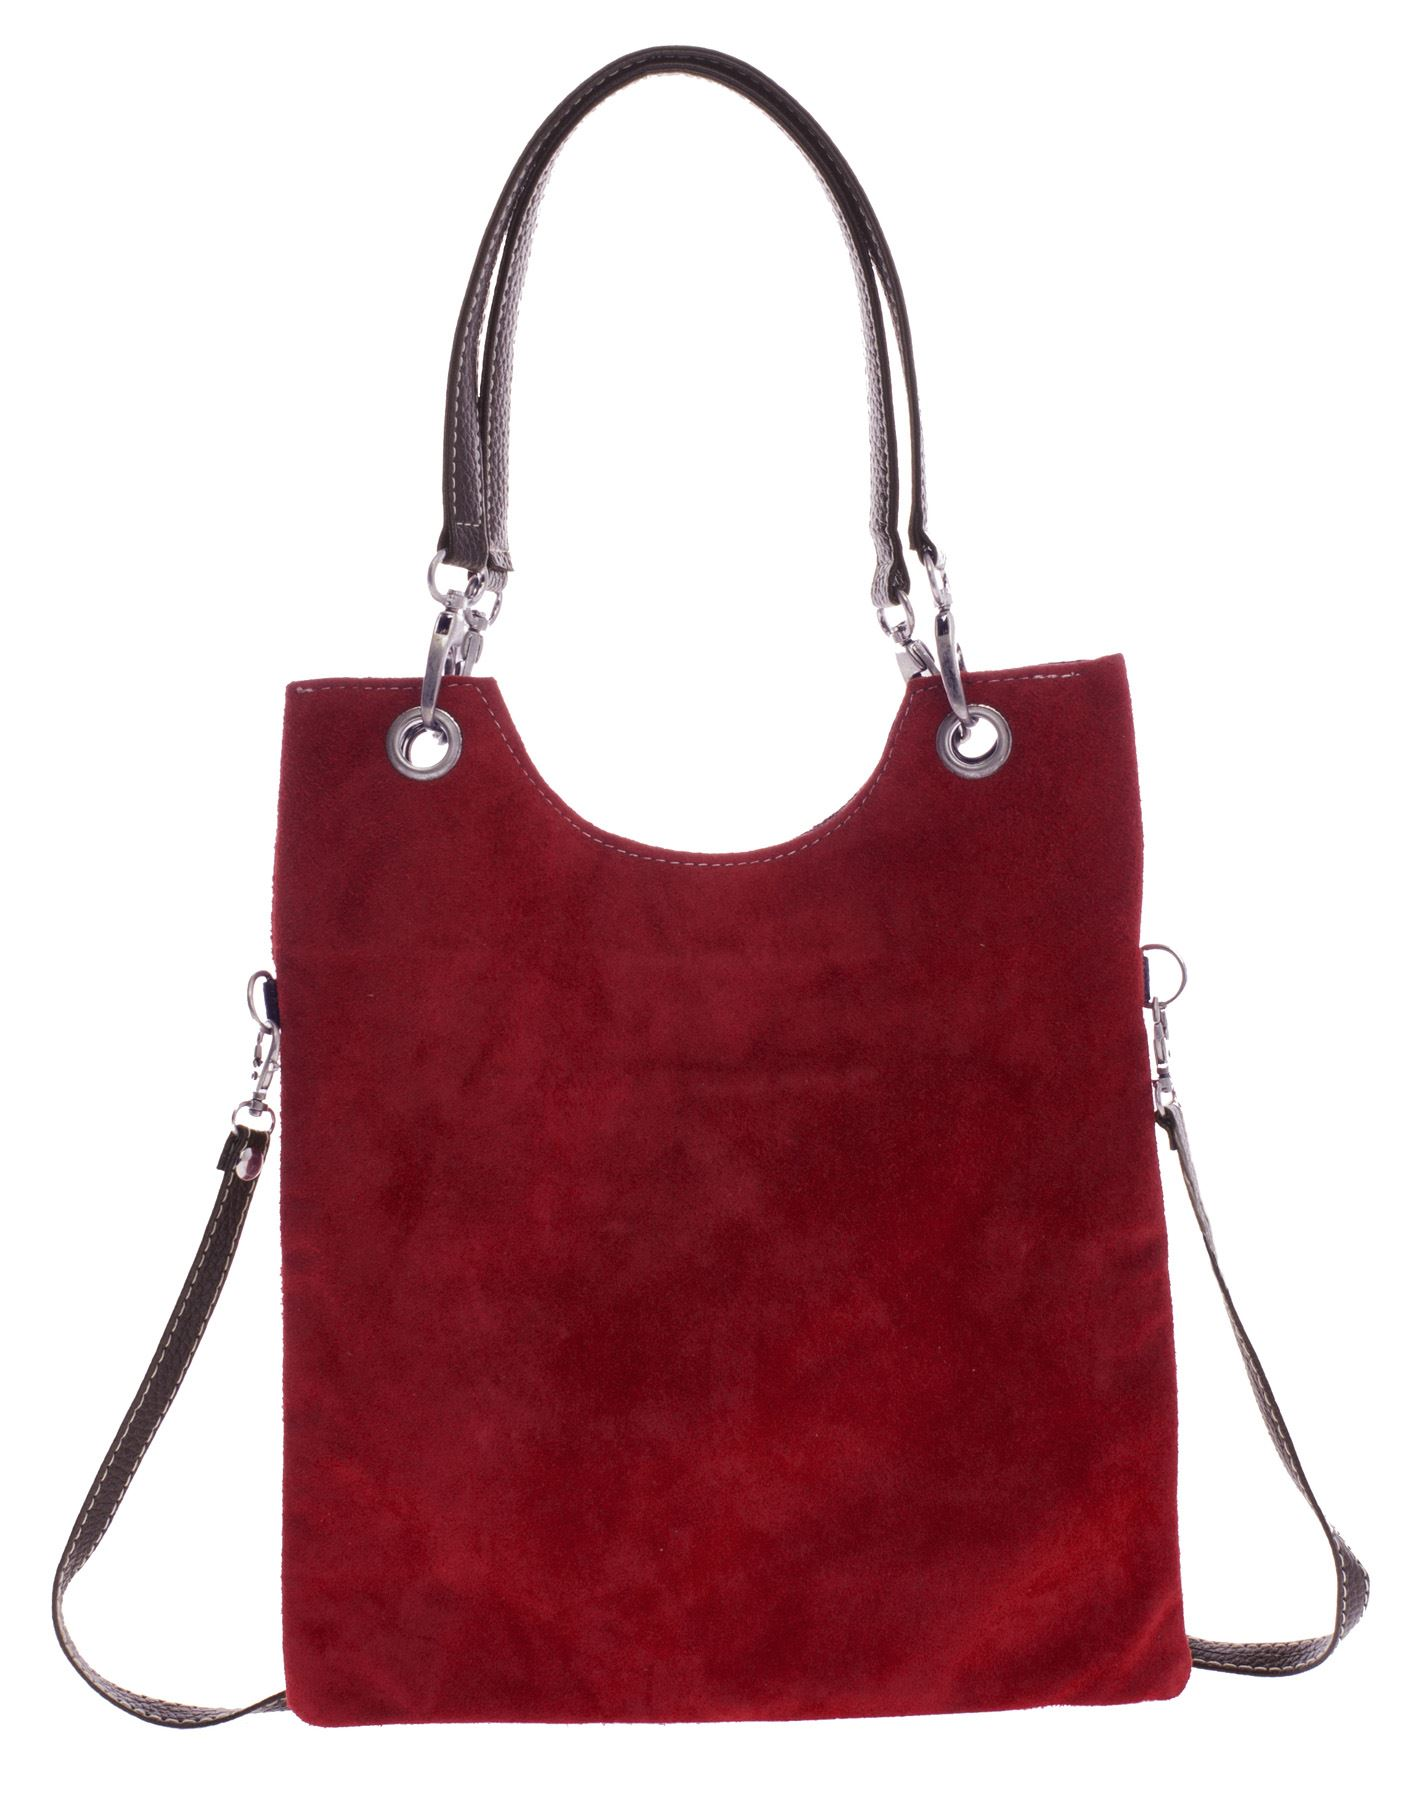 Shop big handbag shop from Armani Exchange, Built NY, Chanel and from senonsdownload-gv.cf, senonsdownload-gv.cf, Kohl's and many more. Find thousands of new high fashion items in one place.